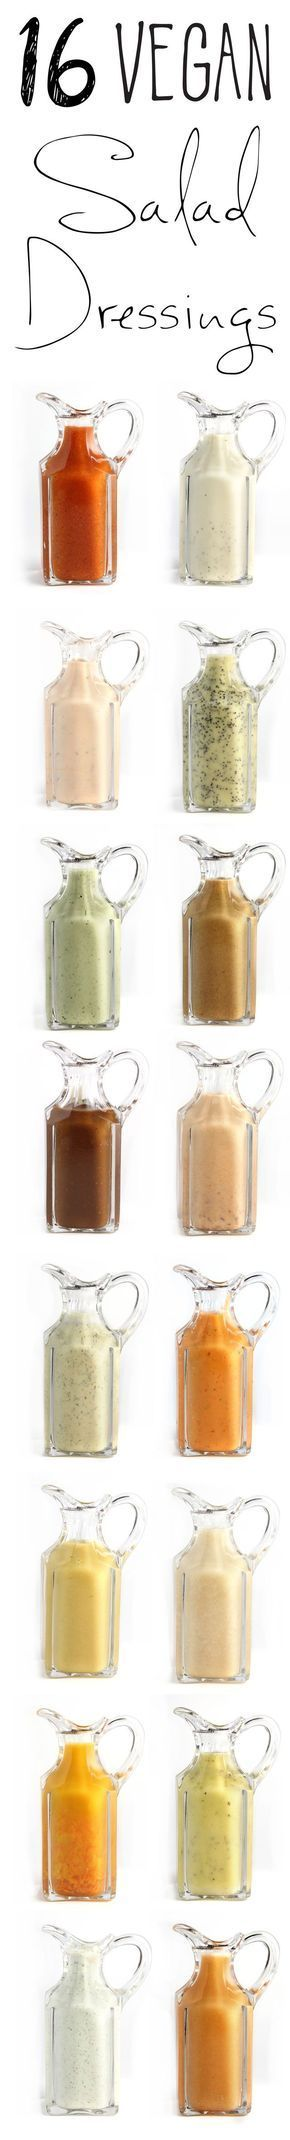 16 vegan salad dressing.